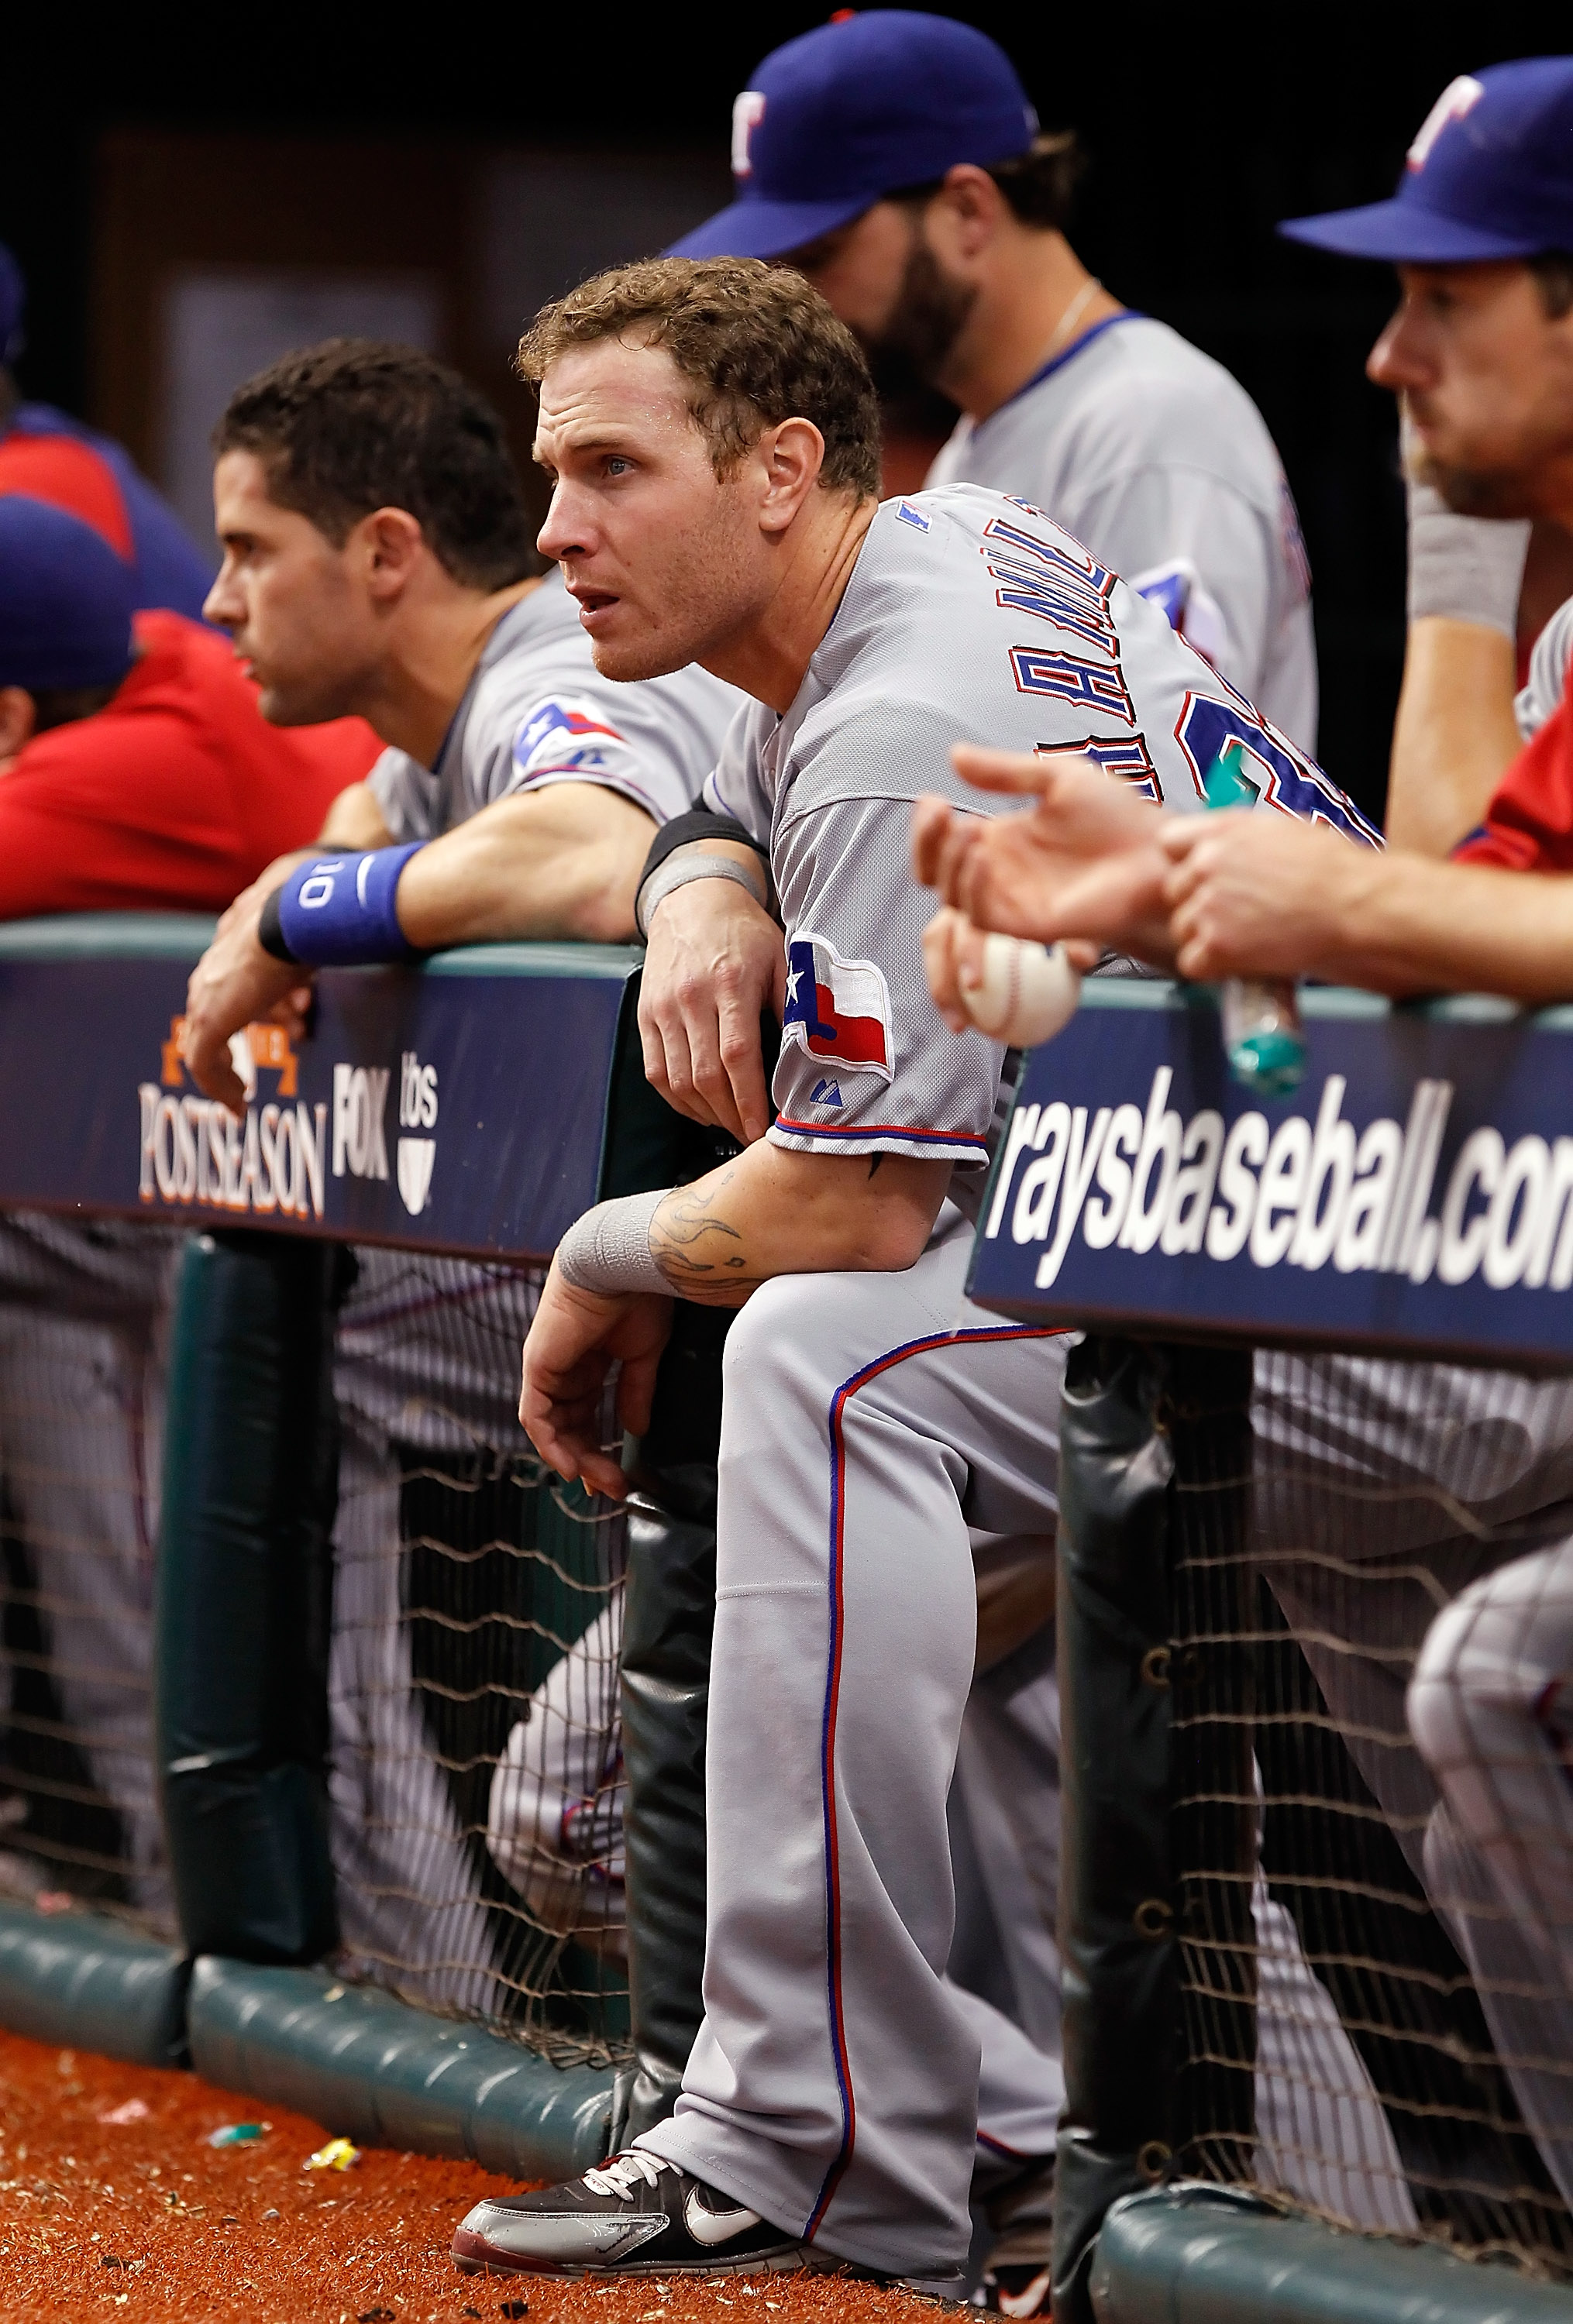 ST PETERSBURG, FL - OCTOBER 07:  Outfielder Josh Hamilton #32 of the Texas Rangers watches his team from the dugout against the Tampa Bay Rays during Game 2 of the ALDS at Tropicana Field on October 7, 2010 in St. Petersburg, Florida.  (Photo by J. Meric/